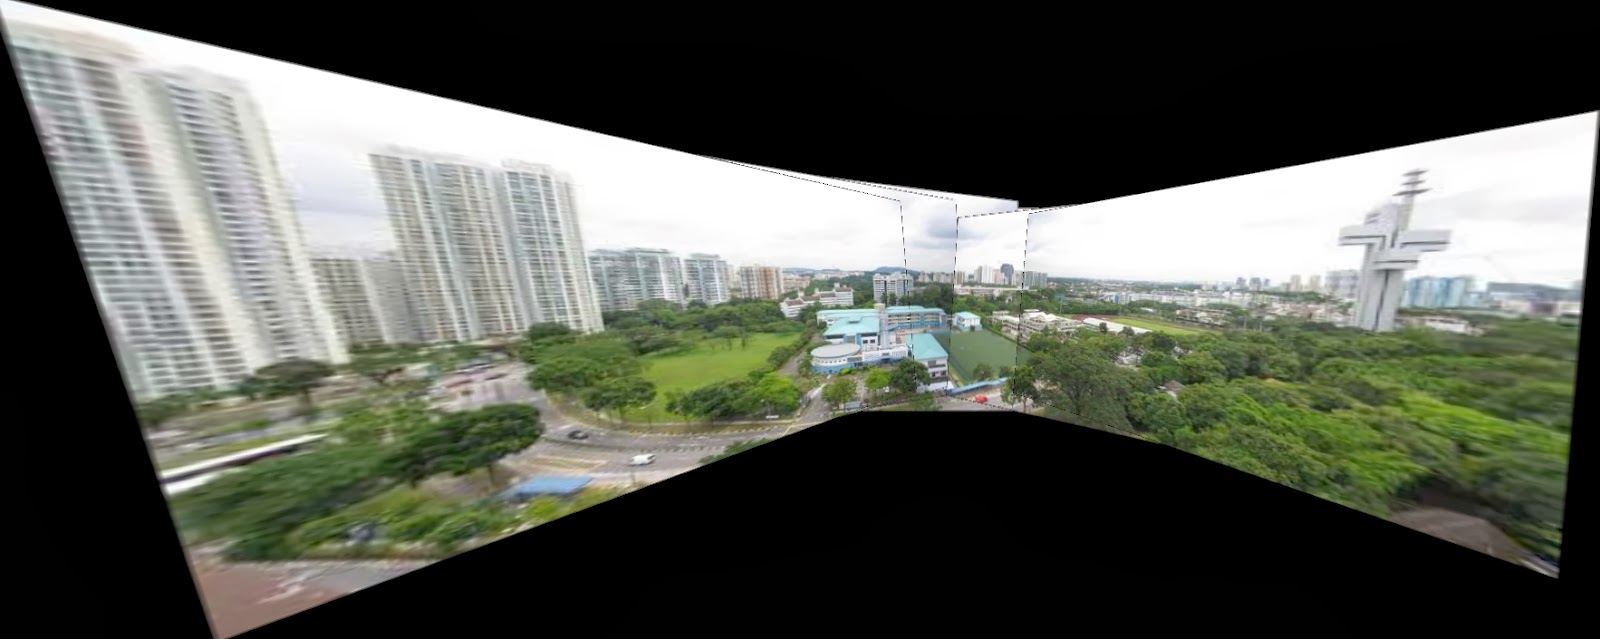 Dawin's Project: Multiple Images/ Panorama Stitching with